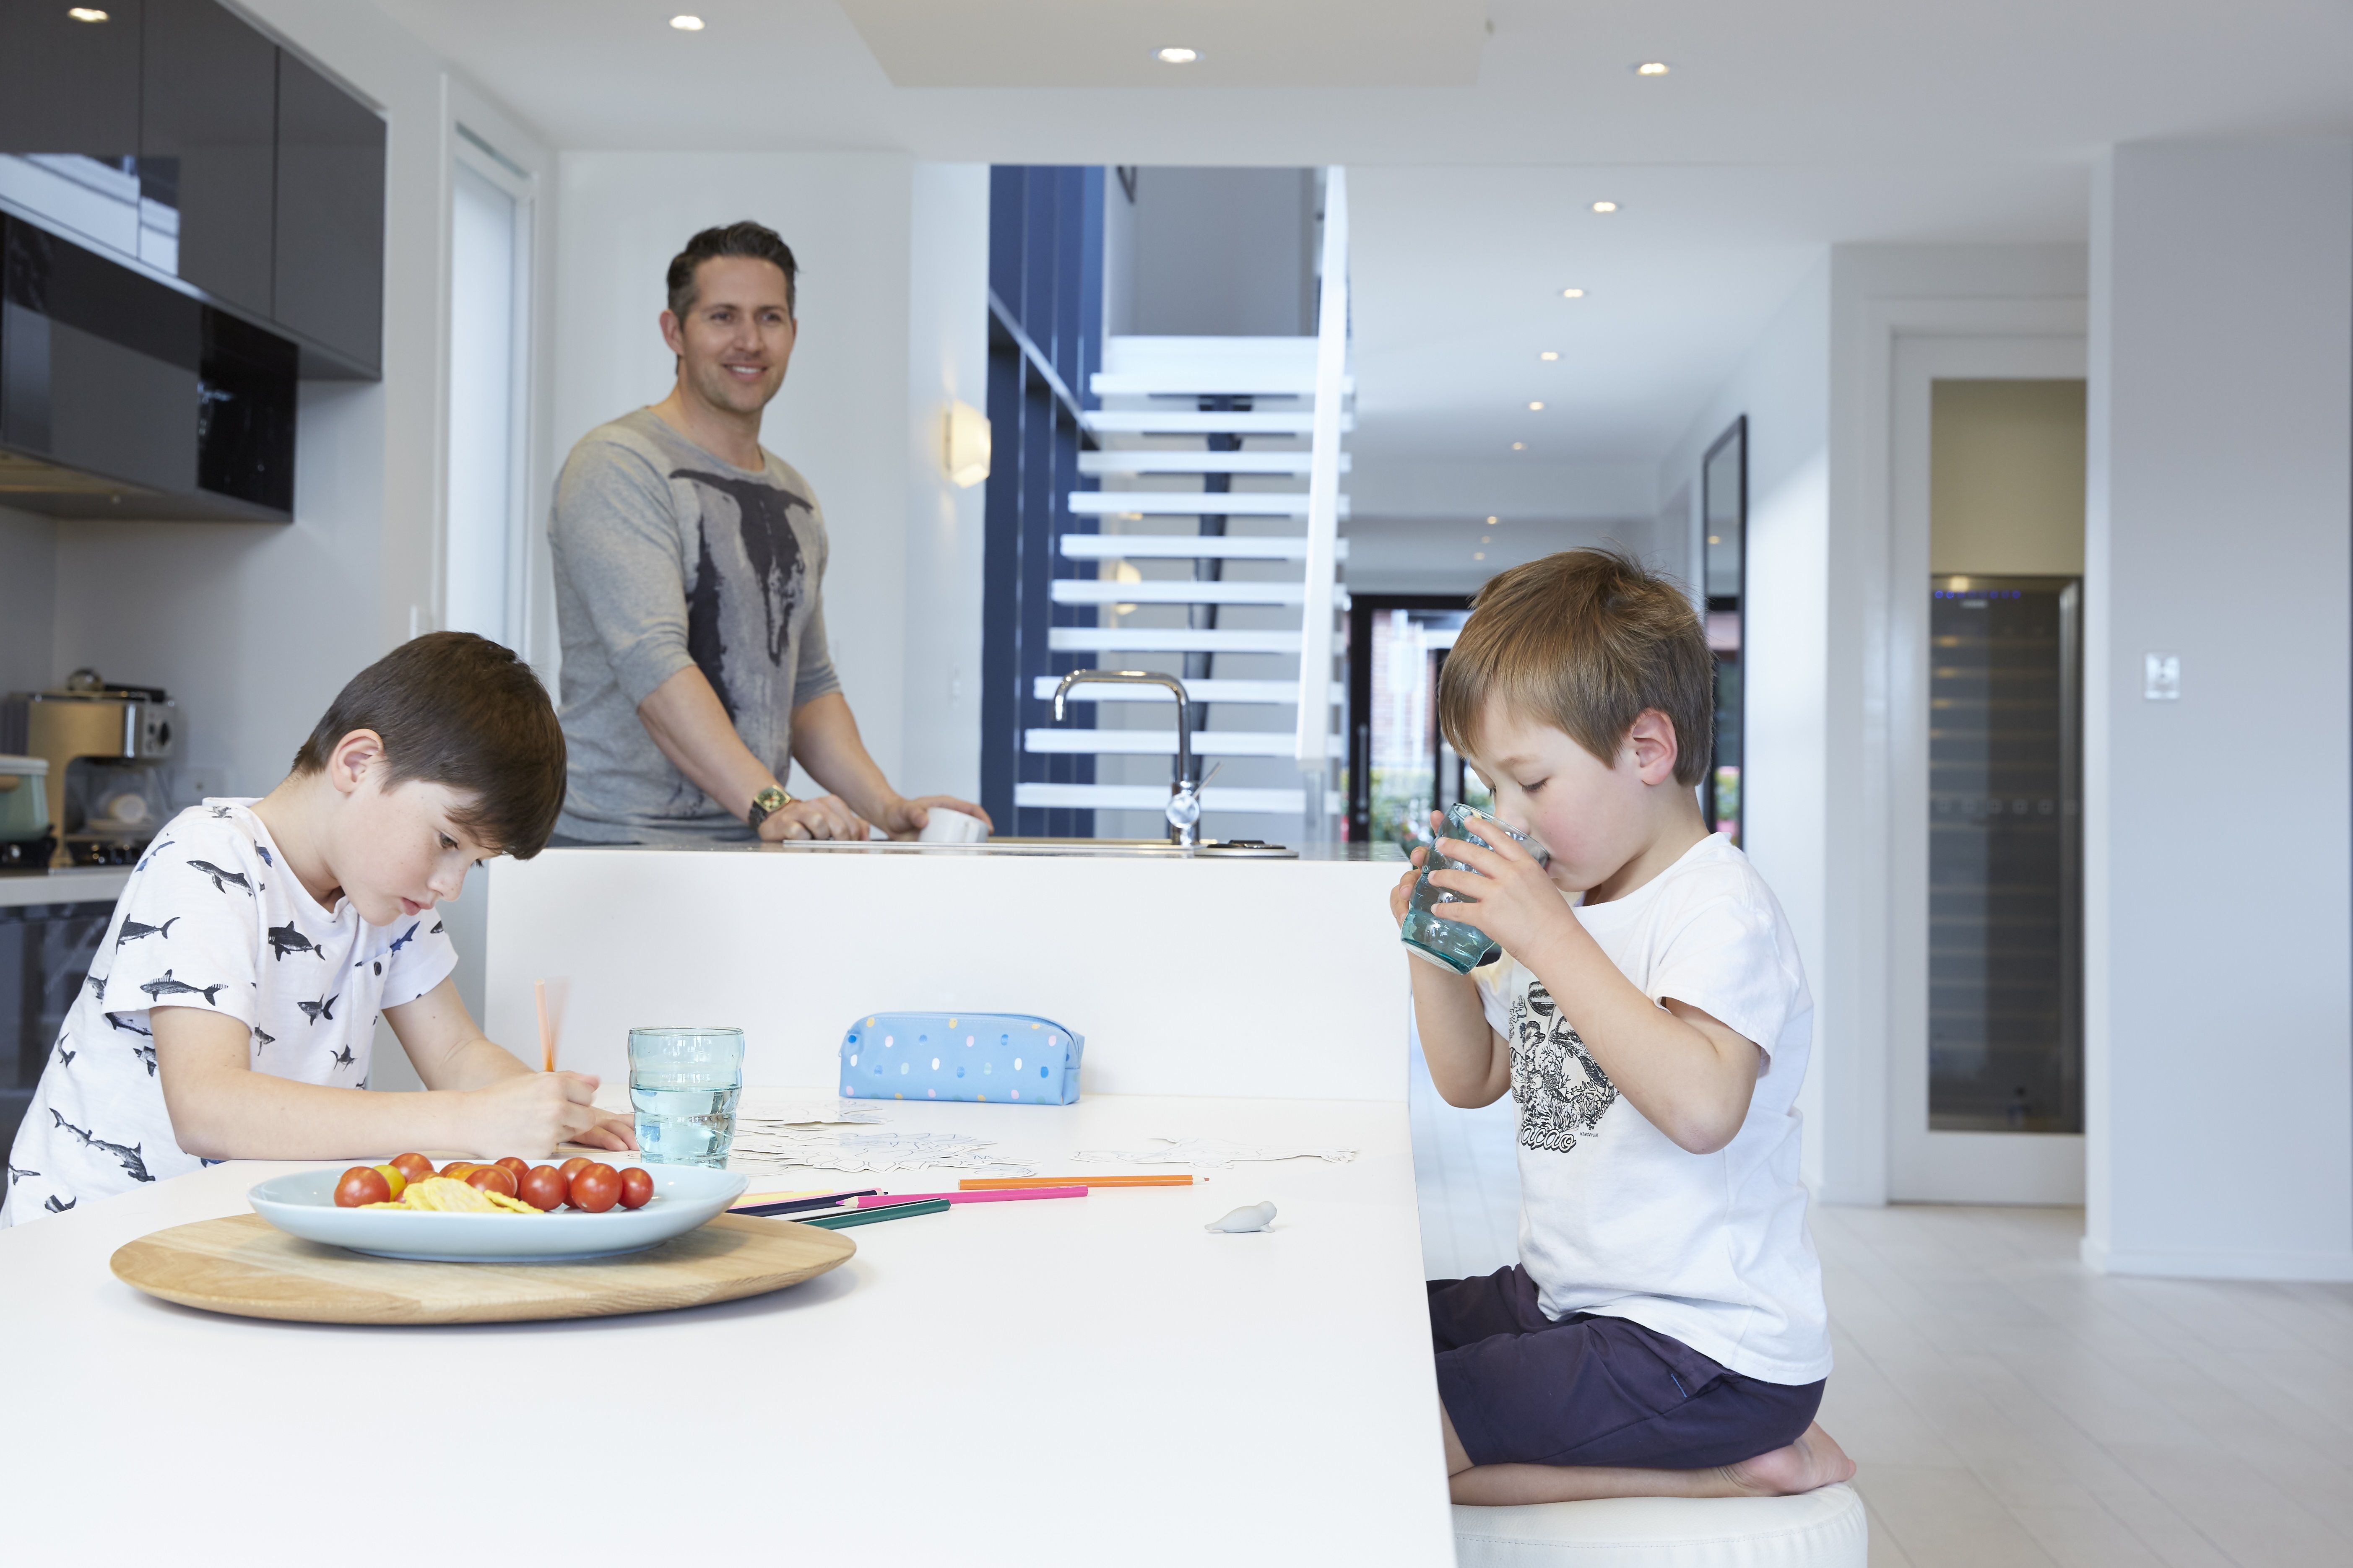 Did you know that Daikin air purifiers and split systems